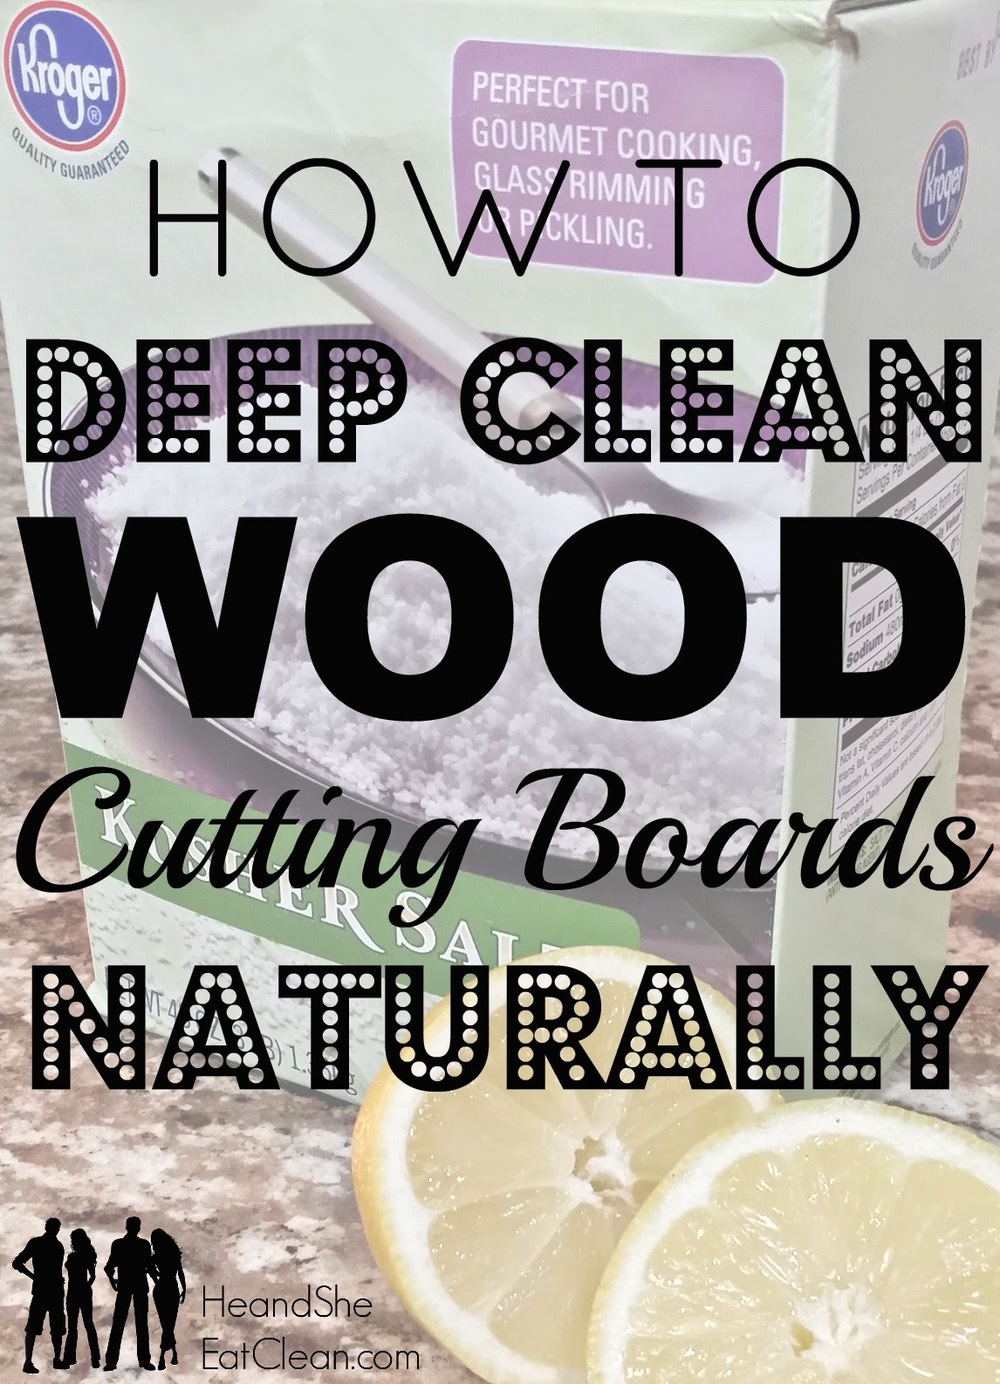 step-by-step-instructions-for-deep-cleaning-your-wood-wooden-cutting-boards-how-to-do-i-he-she-eat-clean.jpg